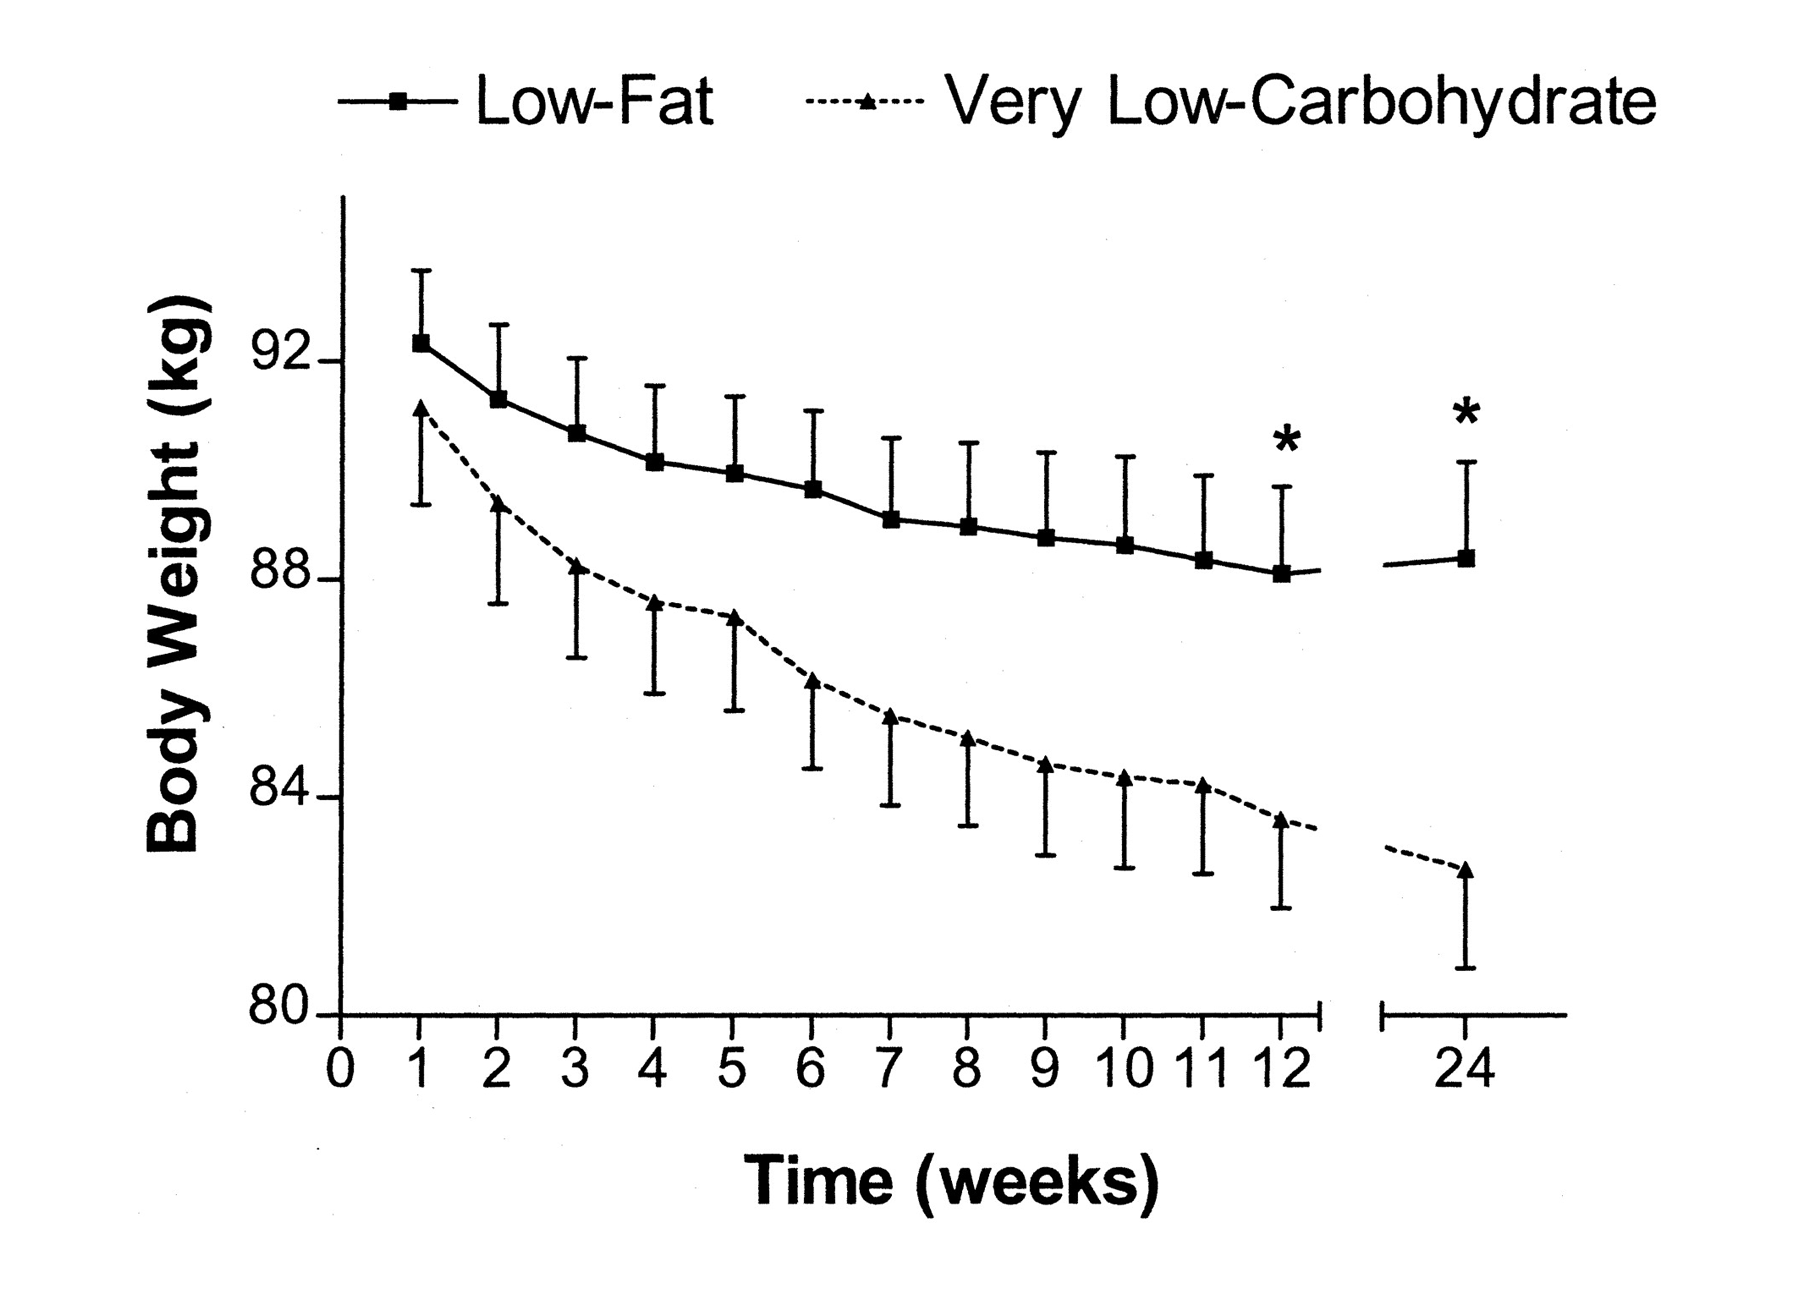 low carbohydrate versus low fat diets essay The low-carb vs low-fat study september 8, 2014 august 21, 2016 zoë harcombe 66 comments atkins low carb vs low fat diet for type 2 diabetes (direct) (part 2.